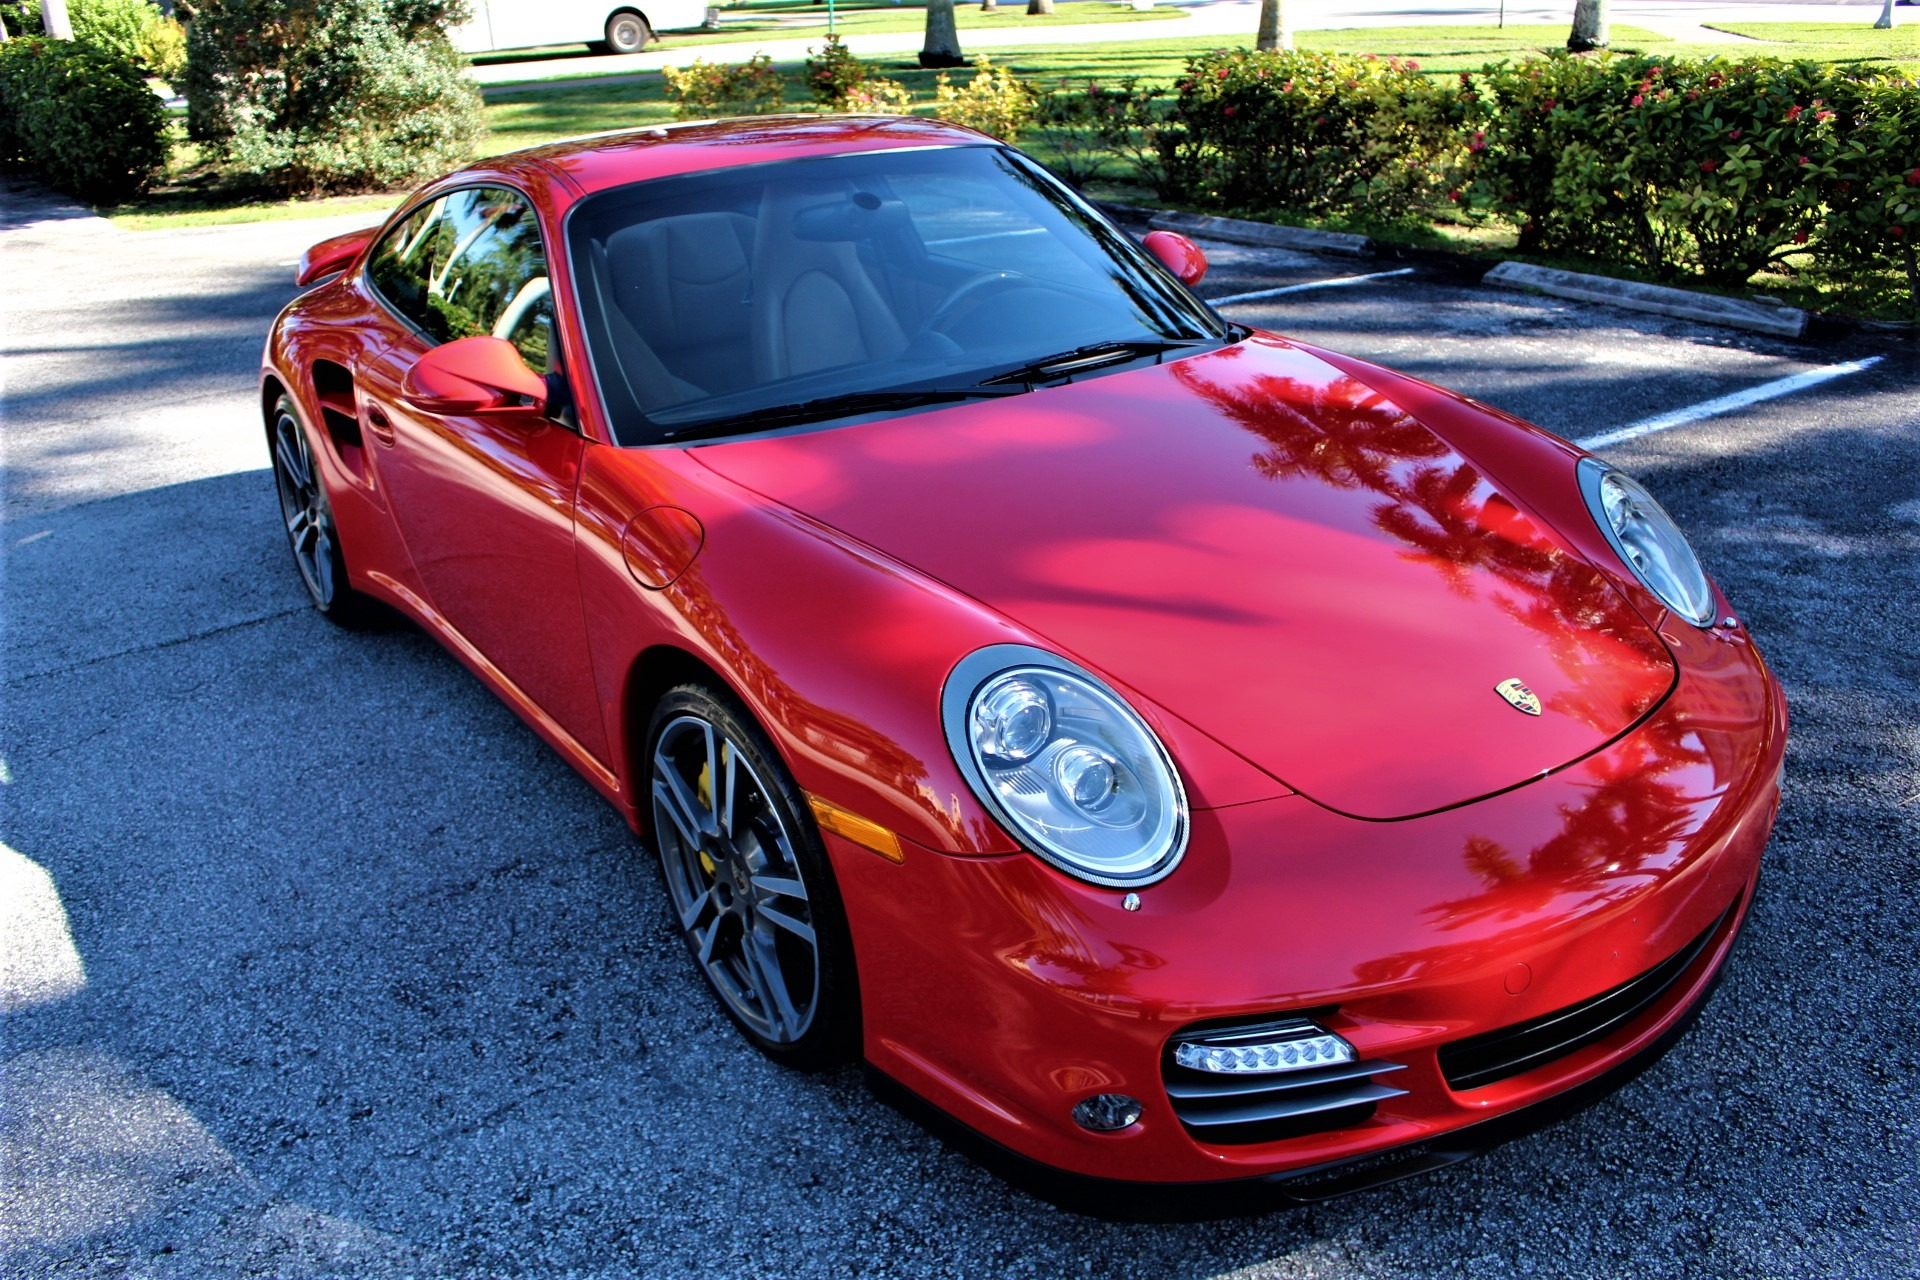 Used 2012 Porsche 911 Turbo for sale Sold at The Gables Sports Cars in Miami FL 33146 3